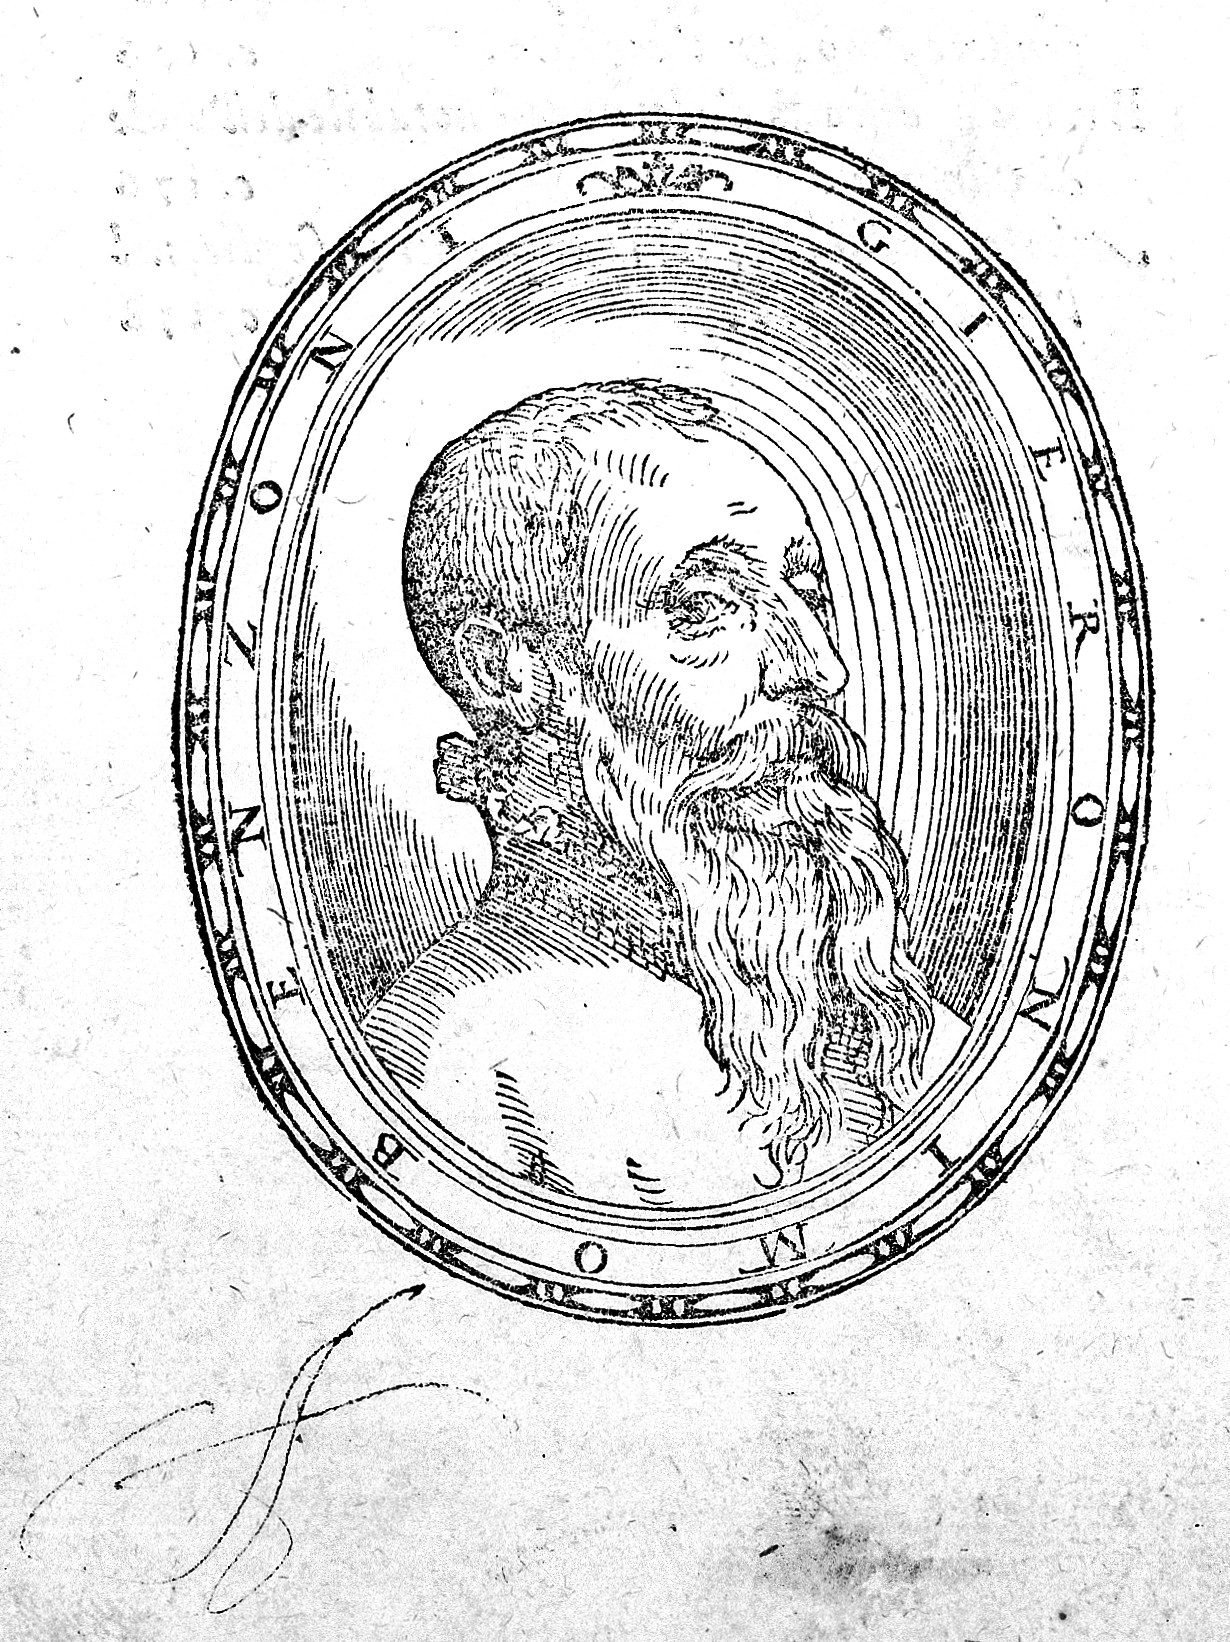 L0020190 Portrait of Girolamo Benzoni Credit: Wellcome Library, London. Wellcome Images images@wellcome.ac.uk http://wellcomeimages.org Portrait of Girolamo Benzoni Woodcut 1572 La Historia del Mondo Nuovo Benzoni, Girolamo Published: 1572 Copyrighted work available under Creative Commons Attribution only licence CC BY 4.0 http://creativecommons.org/licenses/by/4.0/